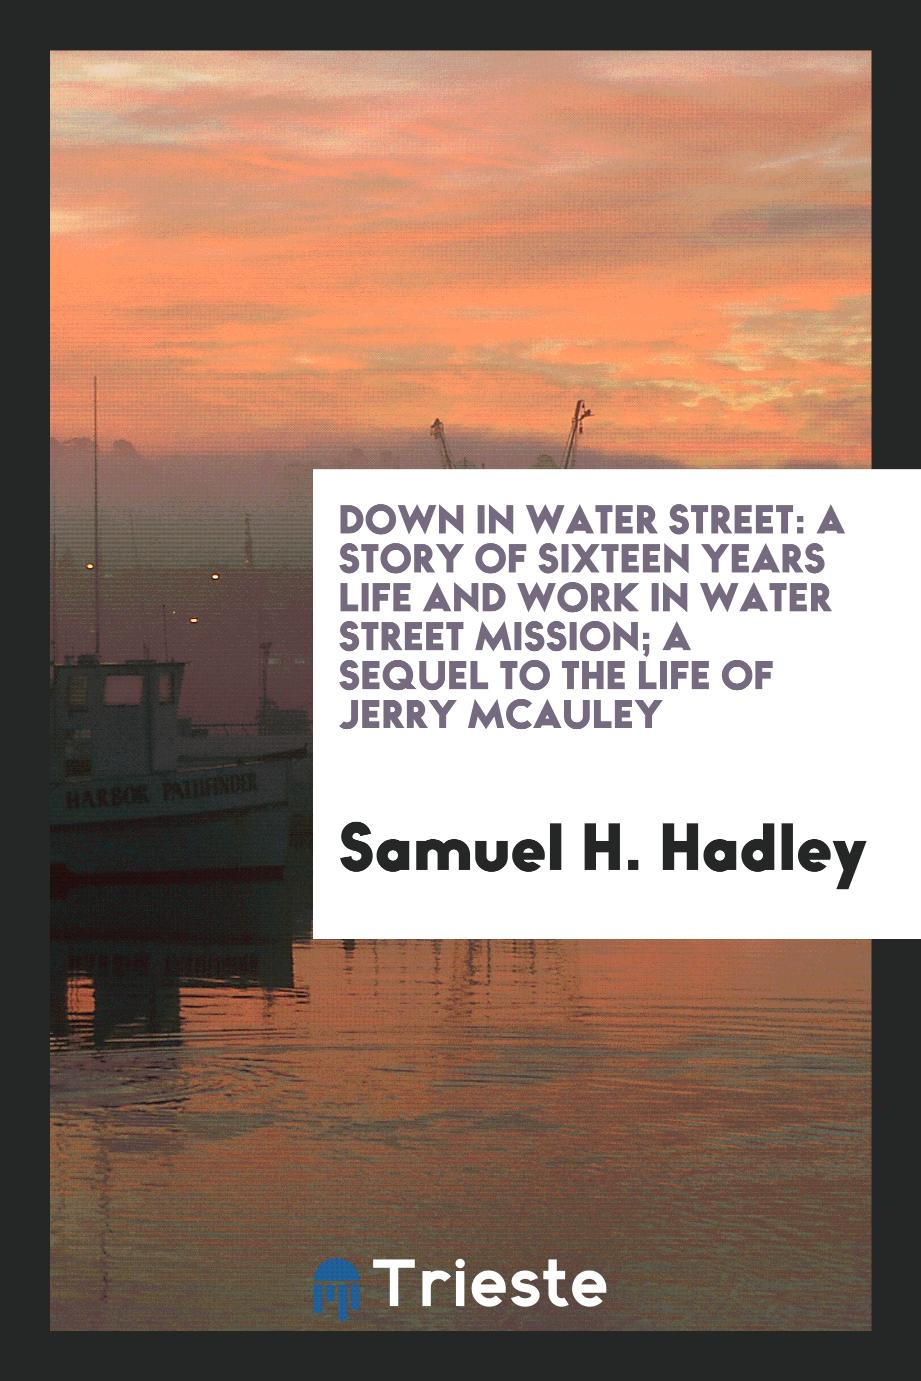 Down in Water Street: A Story of Sixteen Years Life and Work in Water Street Mission; A Sequel to the Life of Jerry McAuley